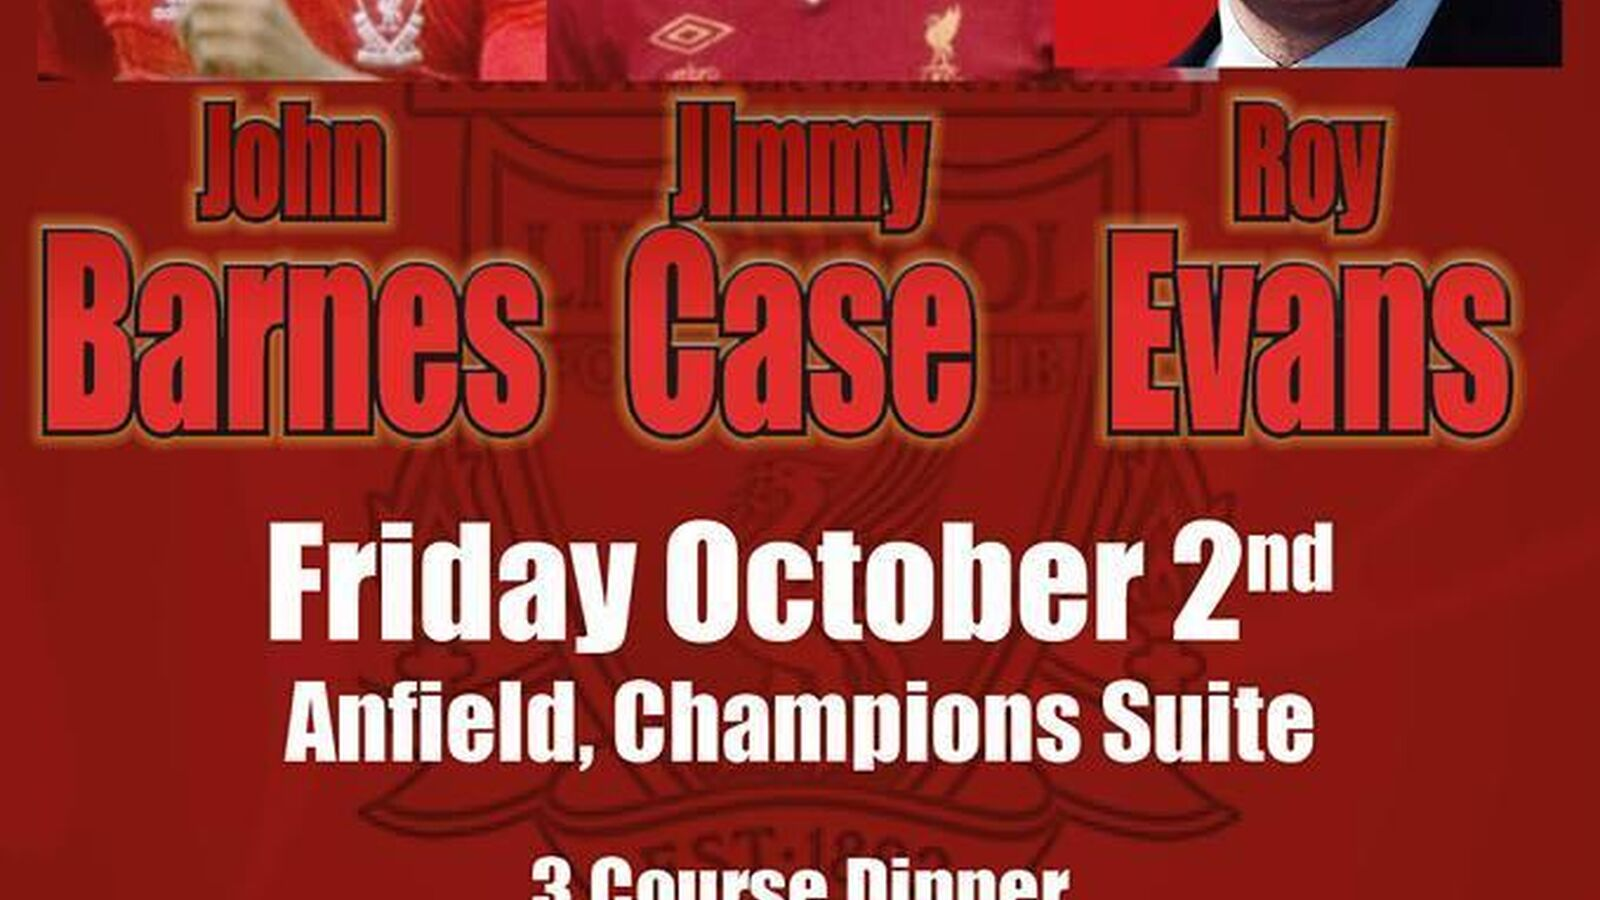 Liverpool FC Legends Charity Evening with Barnes, Case and Evans